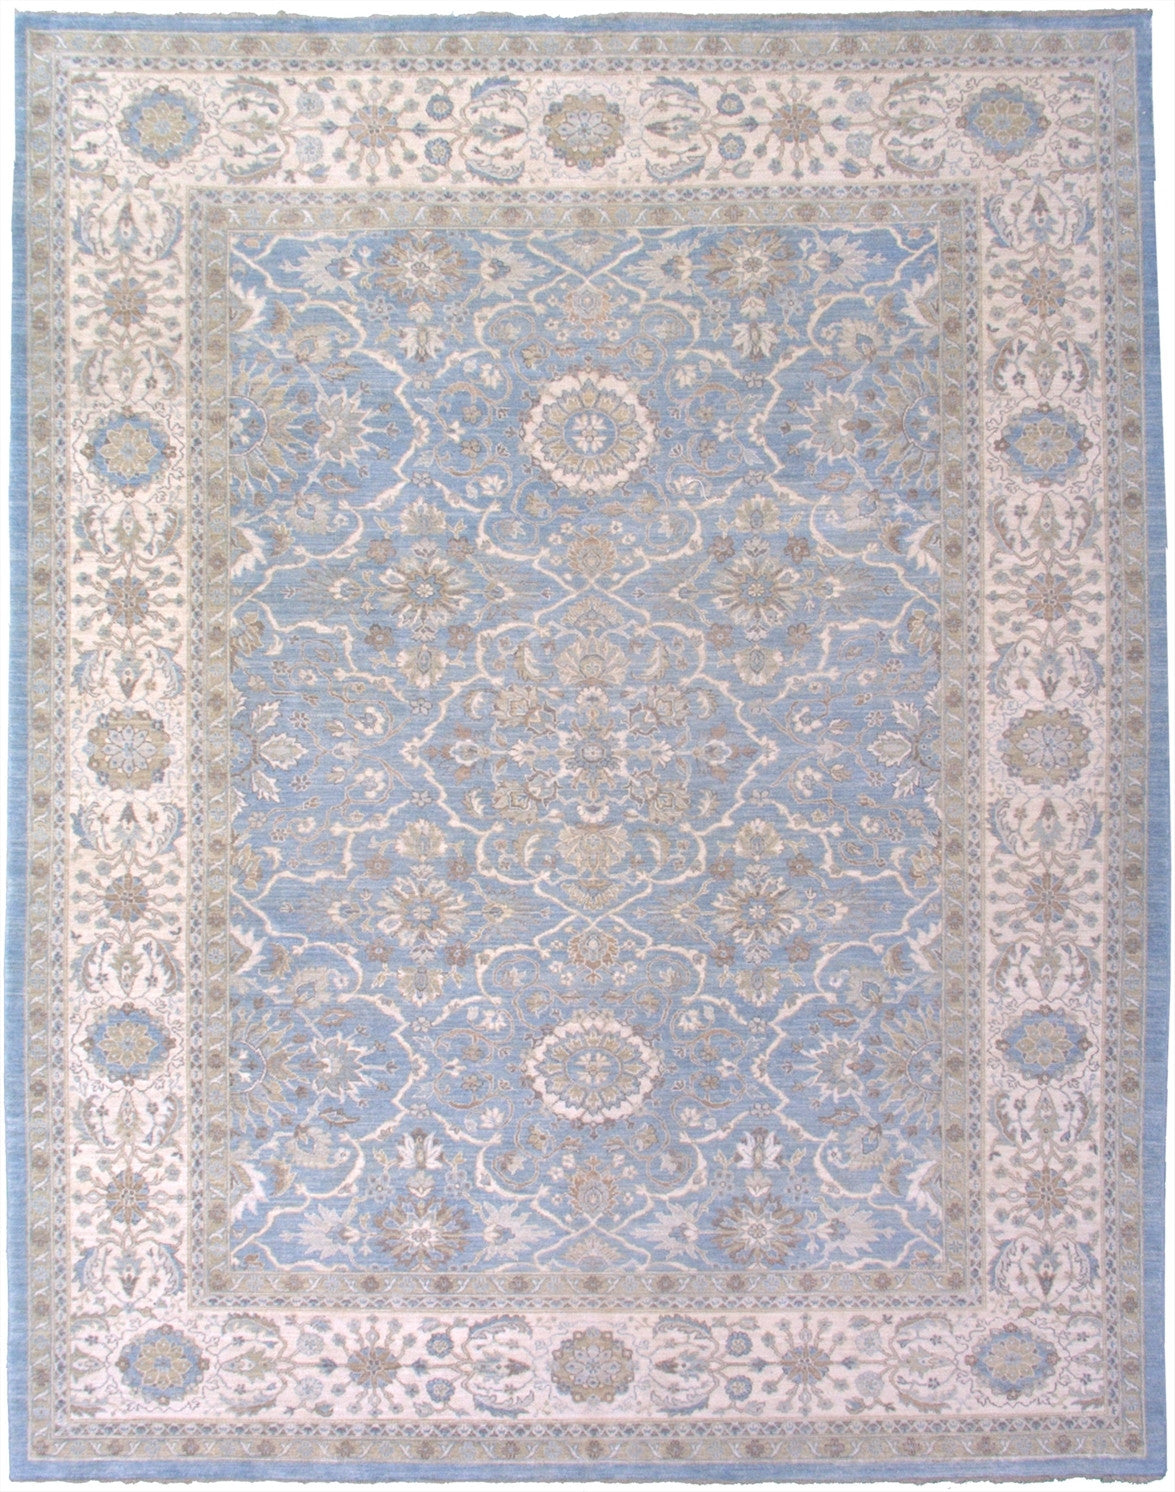 New Pakistan Hand-Woven Antique Reproduction of a 19th Century Persian Tabriz Carpet.   SOLD